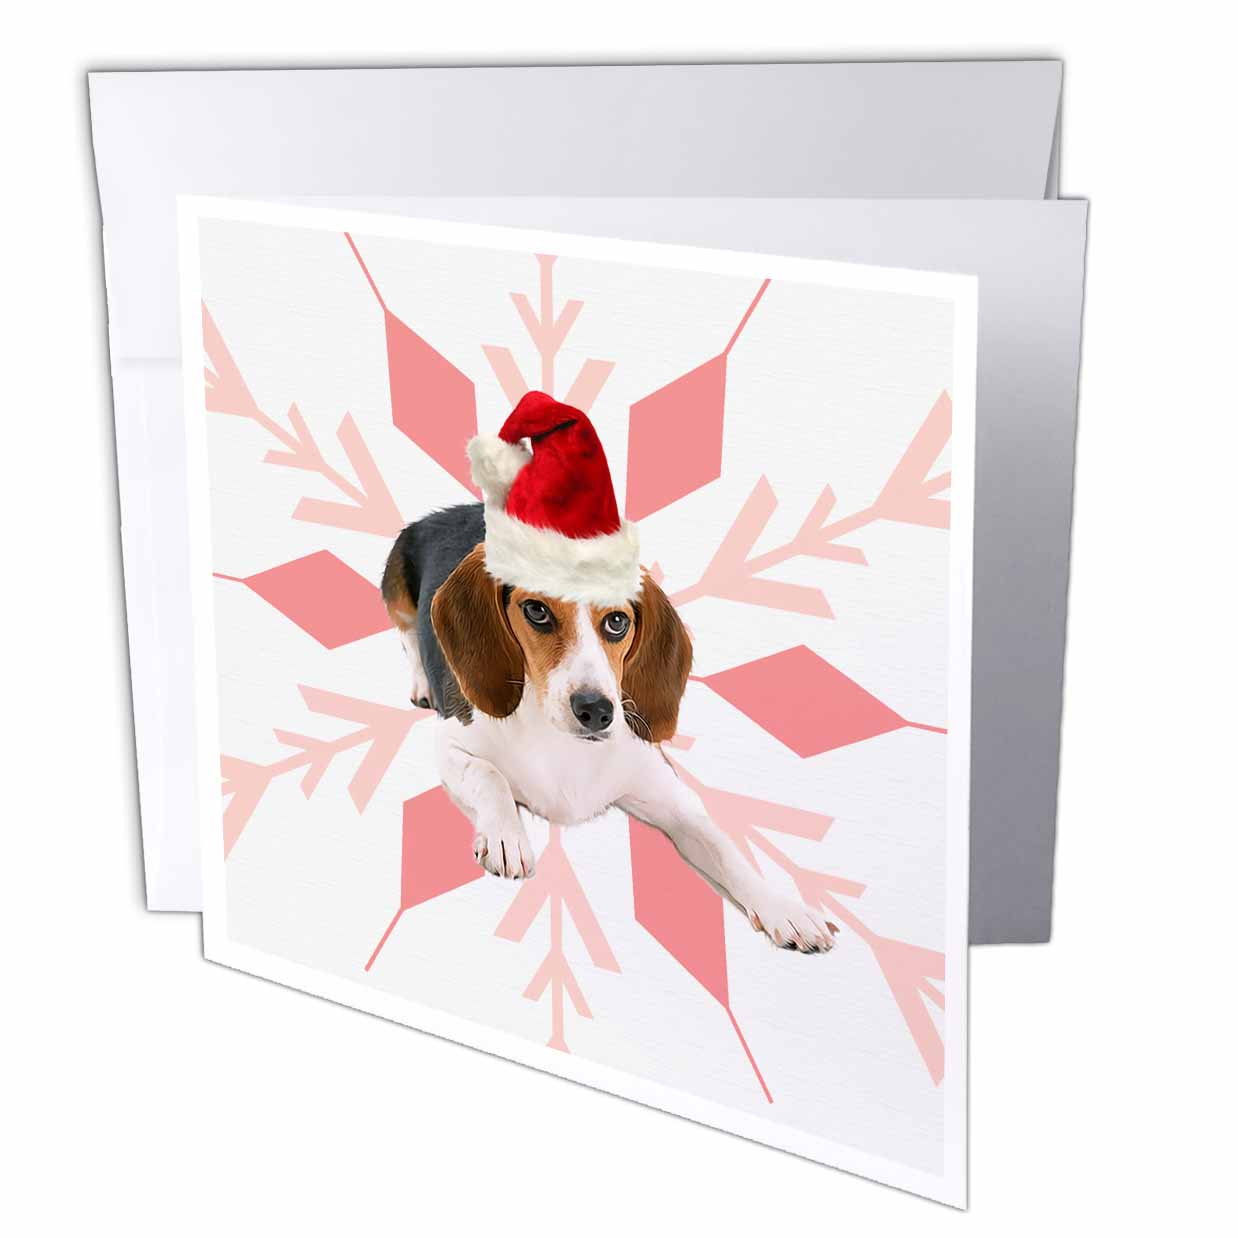 3dRose Beagle Dog Breed in a Red and Pink Santa Hat with Snowflake Christmas, Greeting Cards, 6 x 6 inches, set of 12